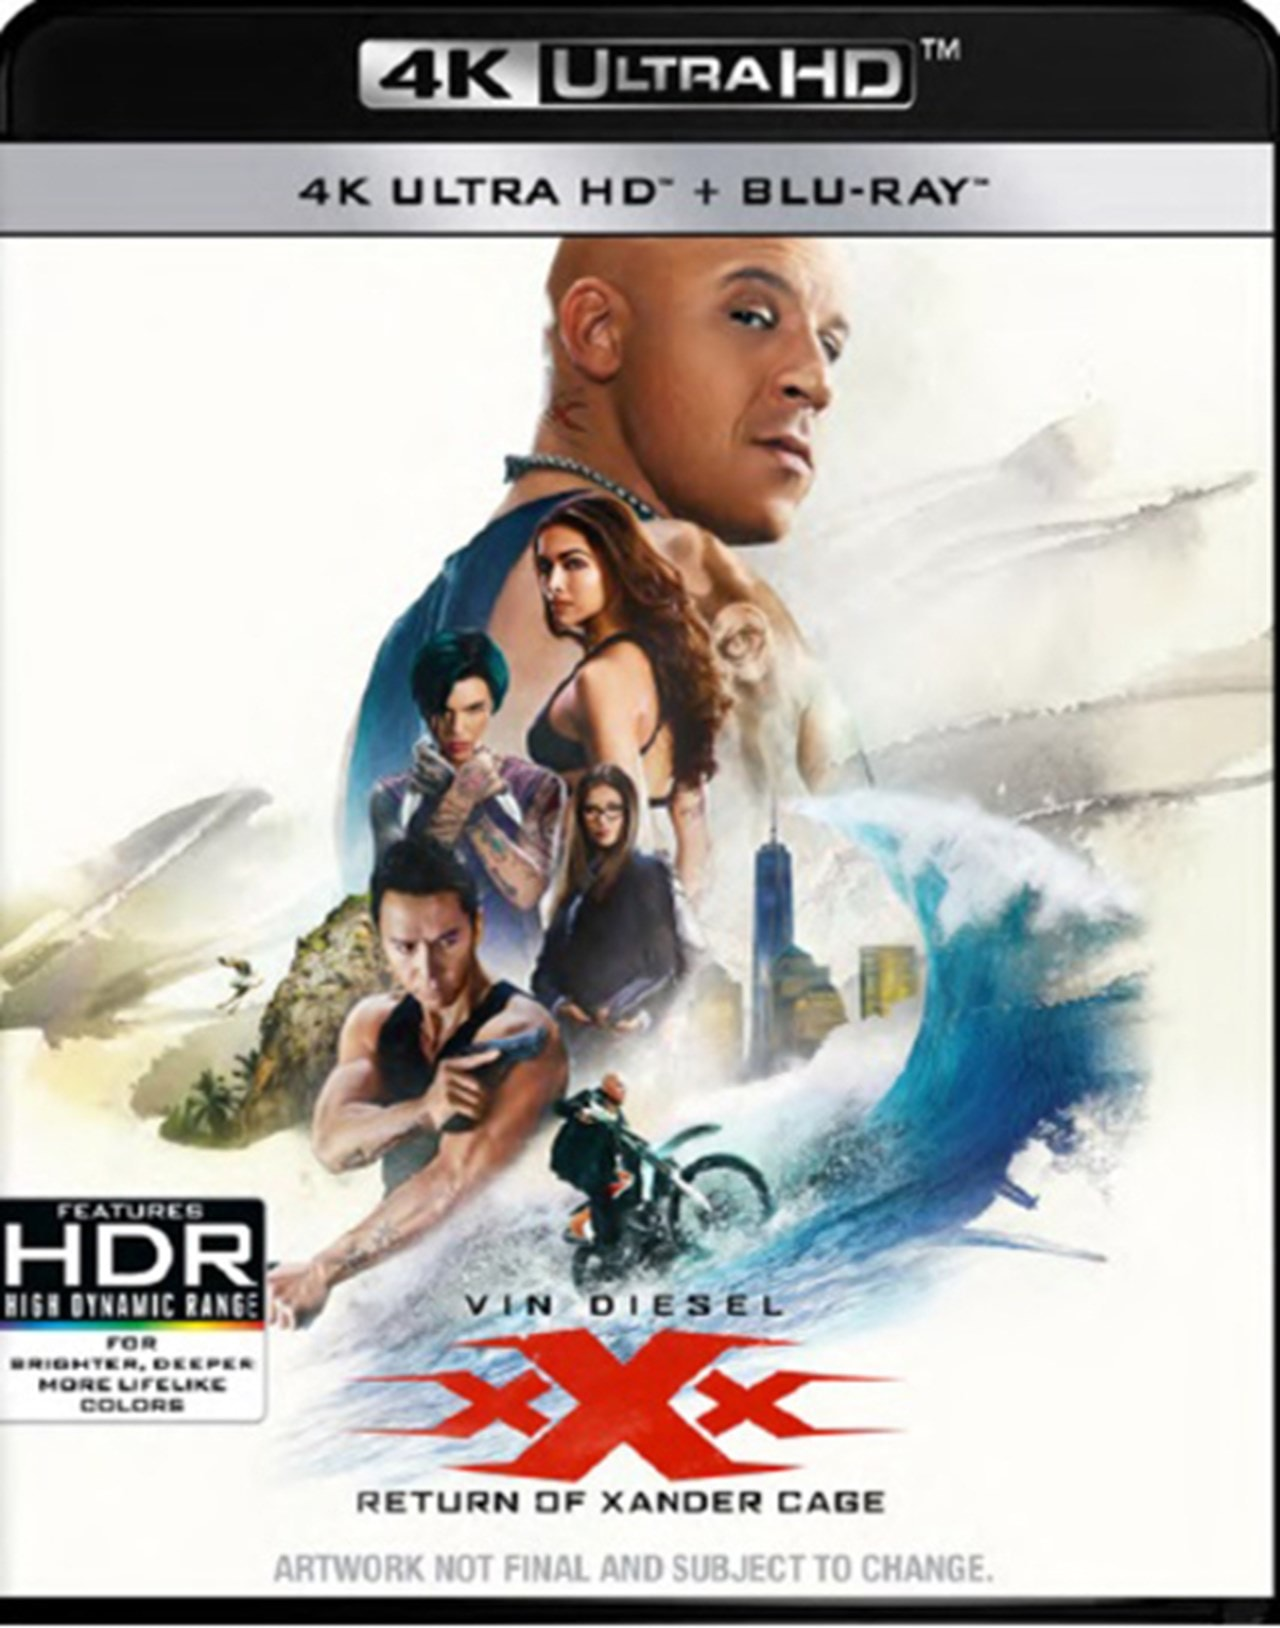 xXx - The Return of Xander Cage - 1